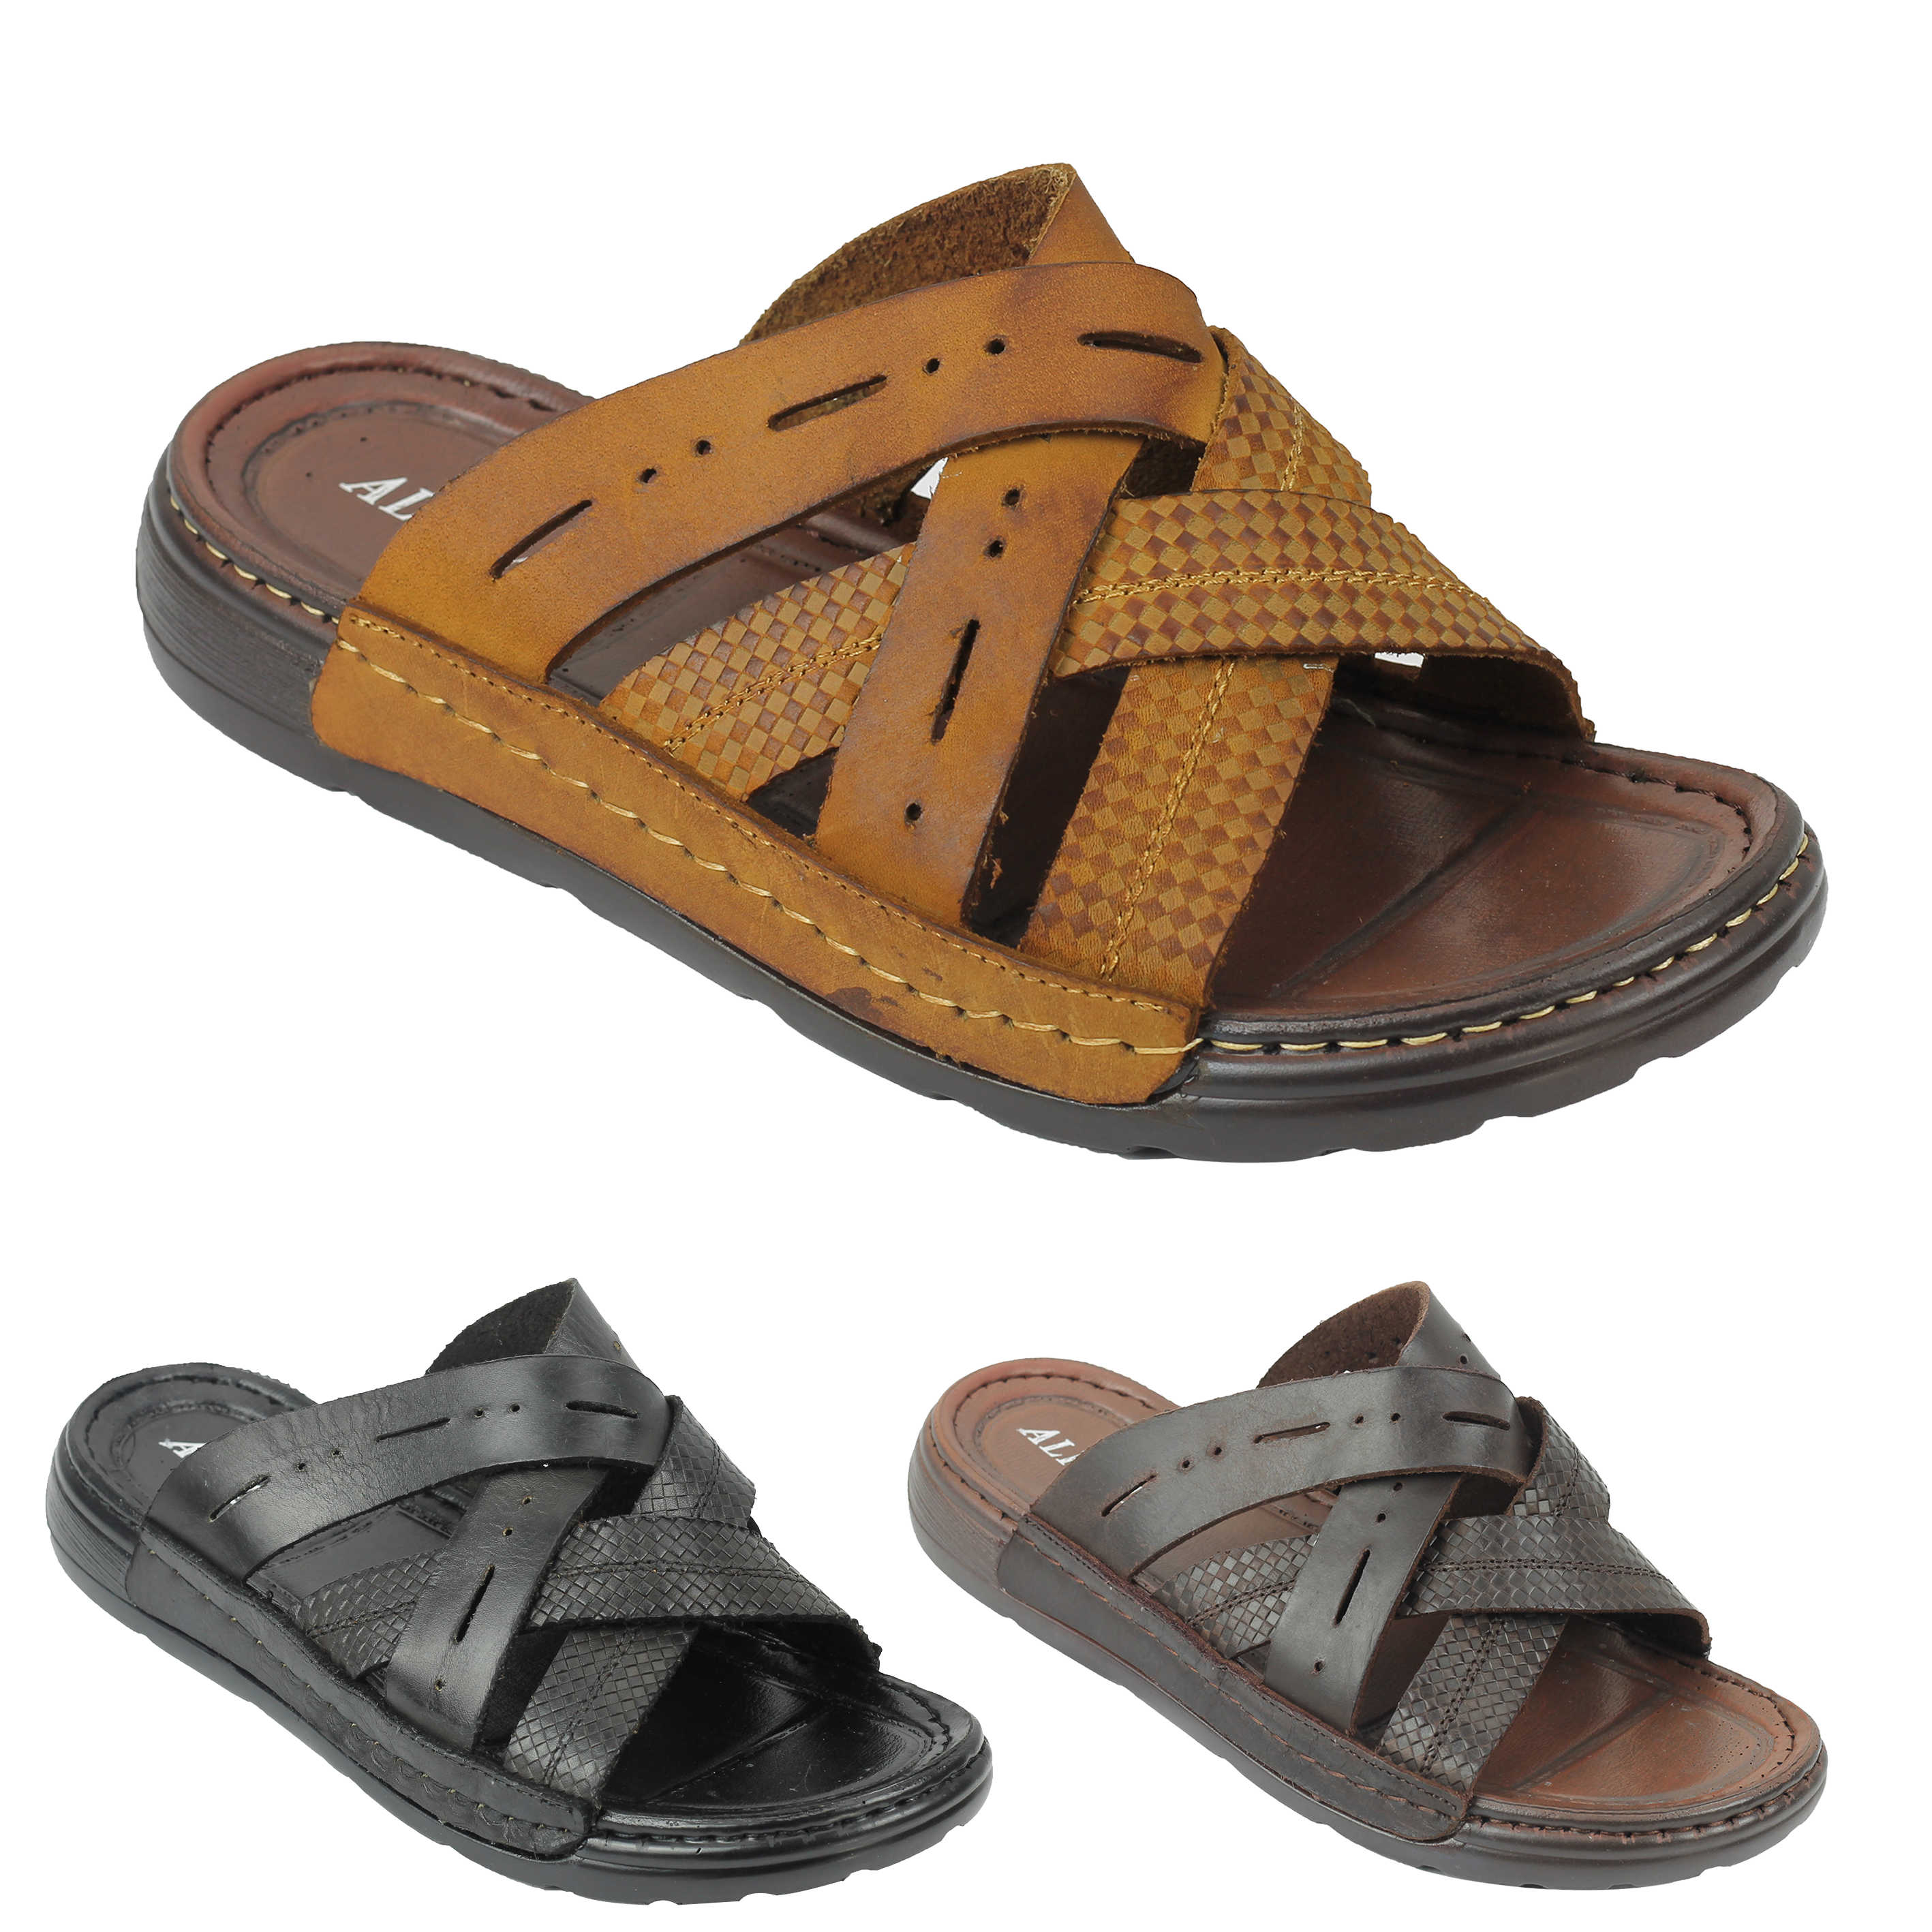 29961b43c98 Details about Mens Soft Real Leather Sandals Cross Straps Open Toe Beach  Slippers Black Brown